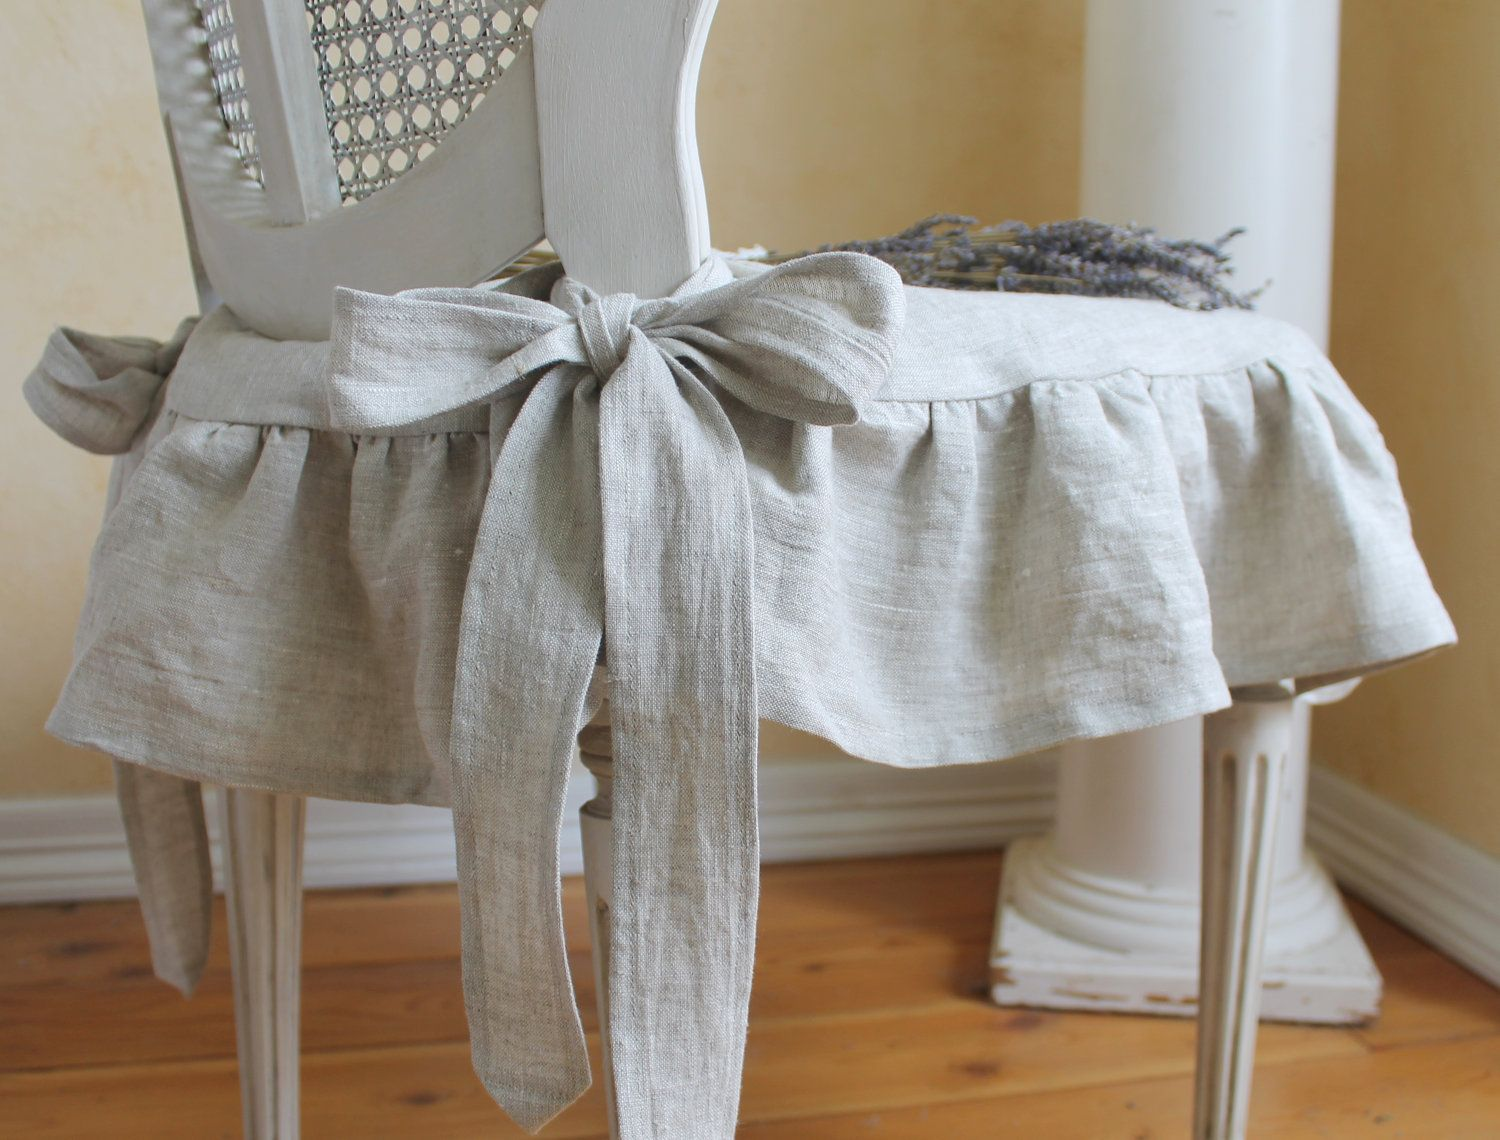 chic chair covers birmingham folding chairs with side table shabby slipcover the isabella ruffled linen